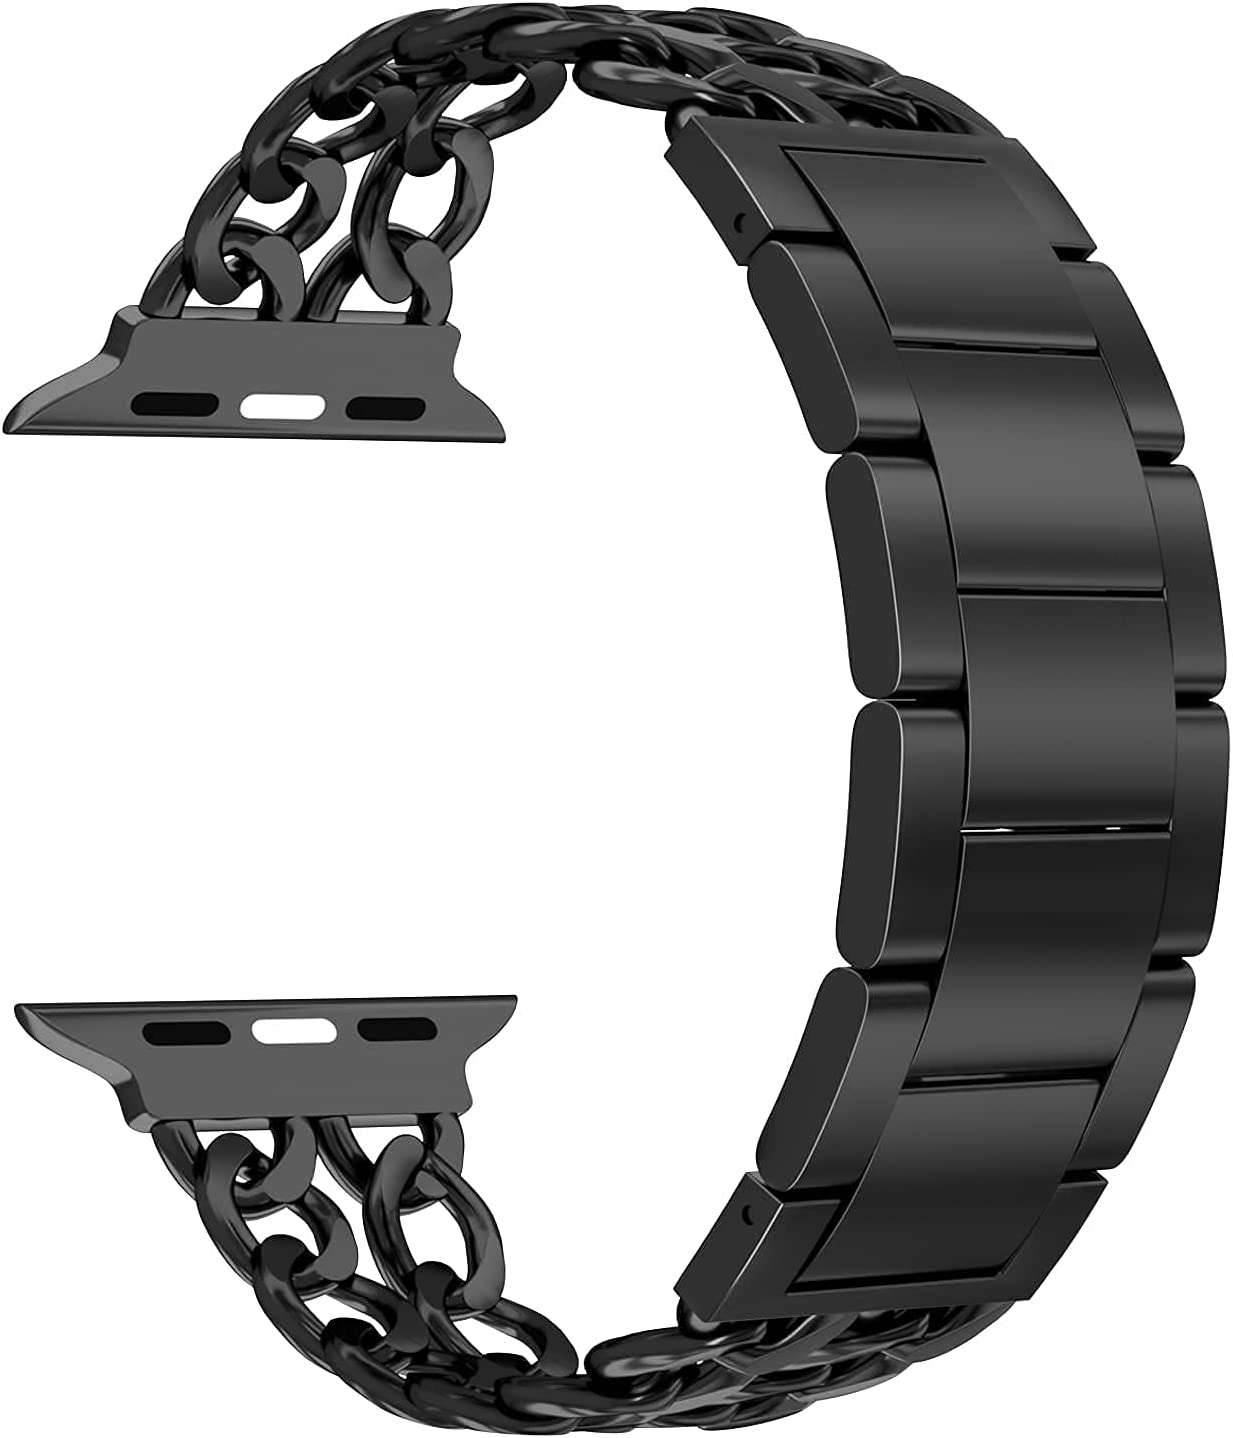 Aowemea Compatible for Apple Watch Series SE 6/5/4/3/2/1 38/40mm, Shiny Diamond Cowboy Chain Stainless Steel iWatch Band Women Wristband Strap Bracelet (Black, 38/40mm)